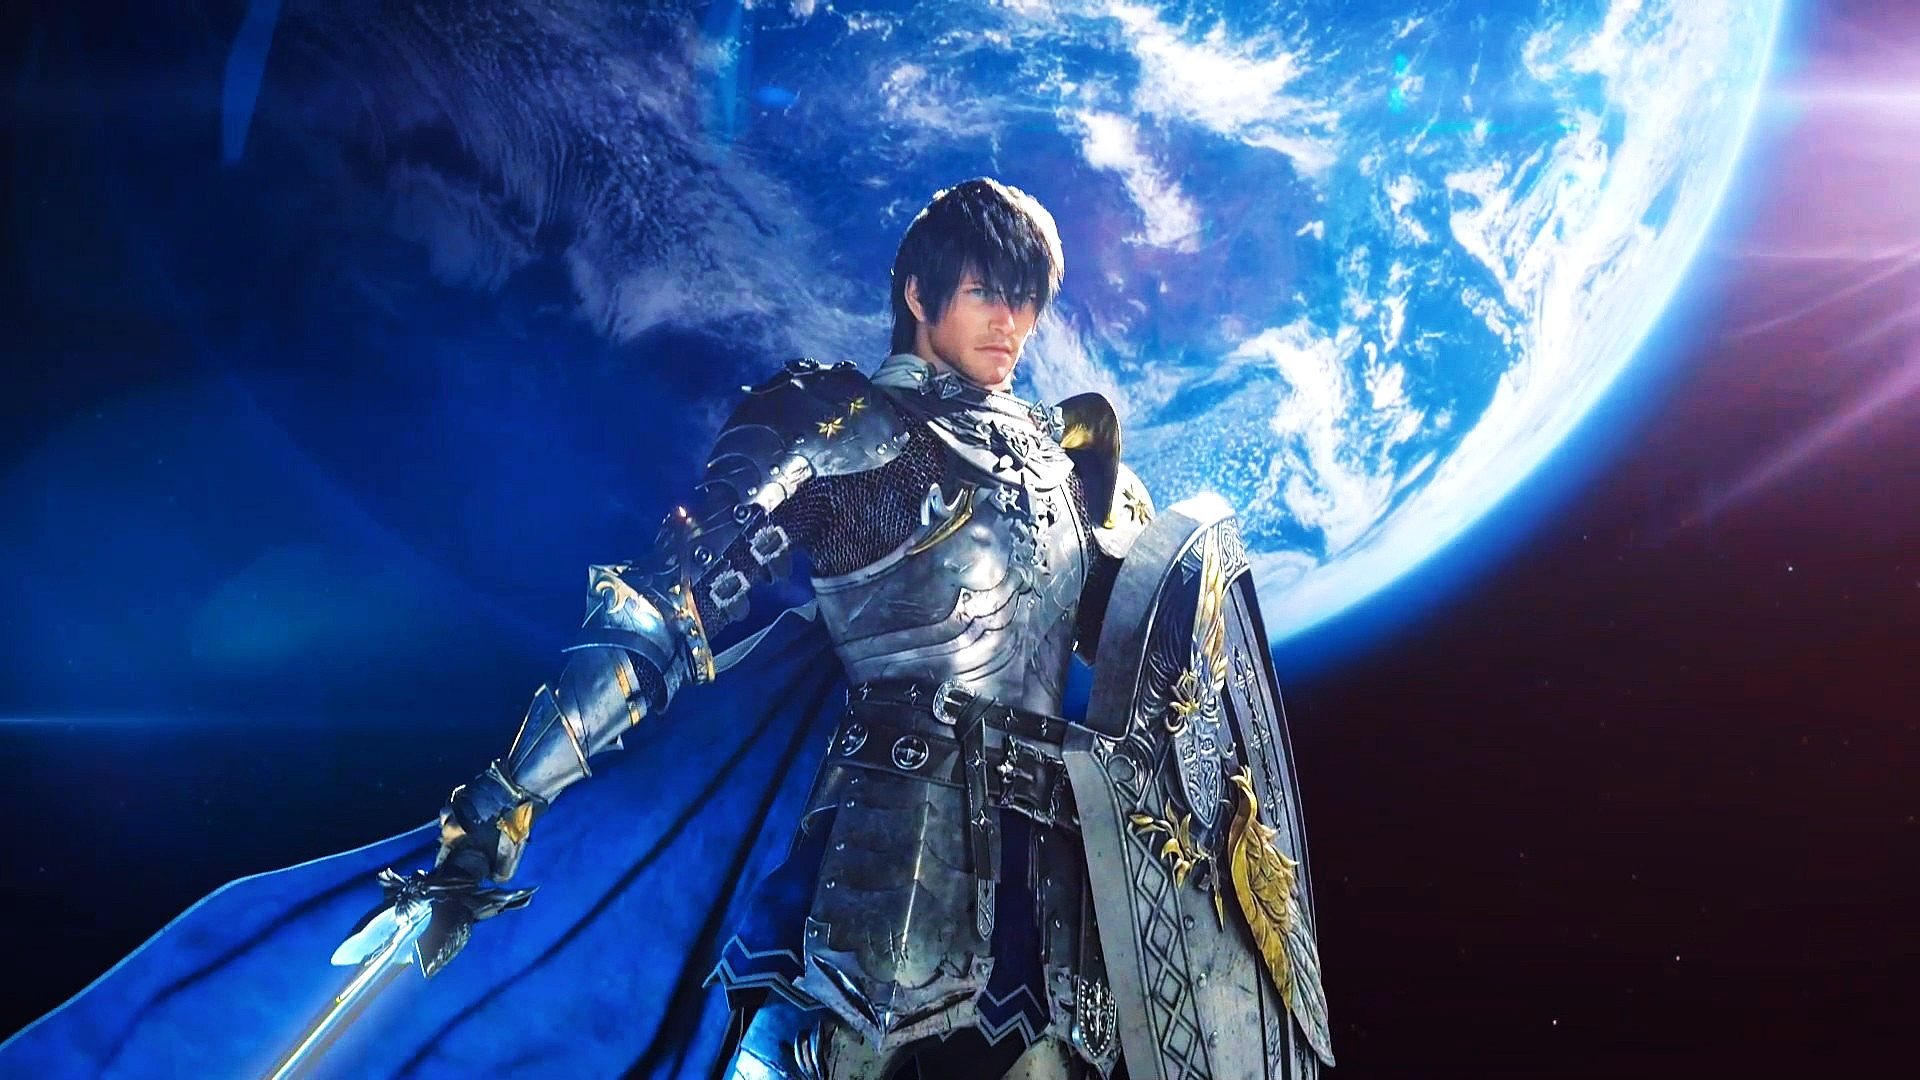 FFXIV 5.55 is out, so the game's 60% off